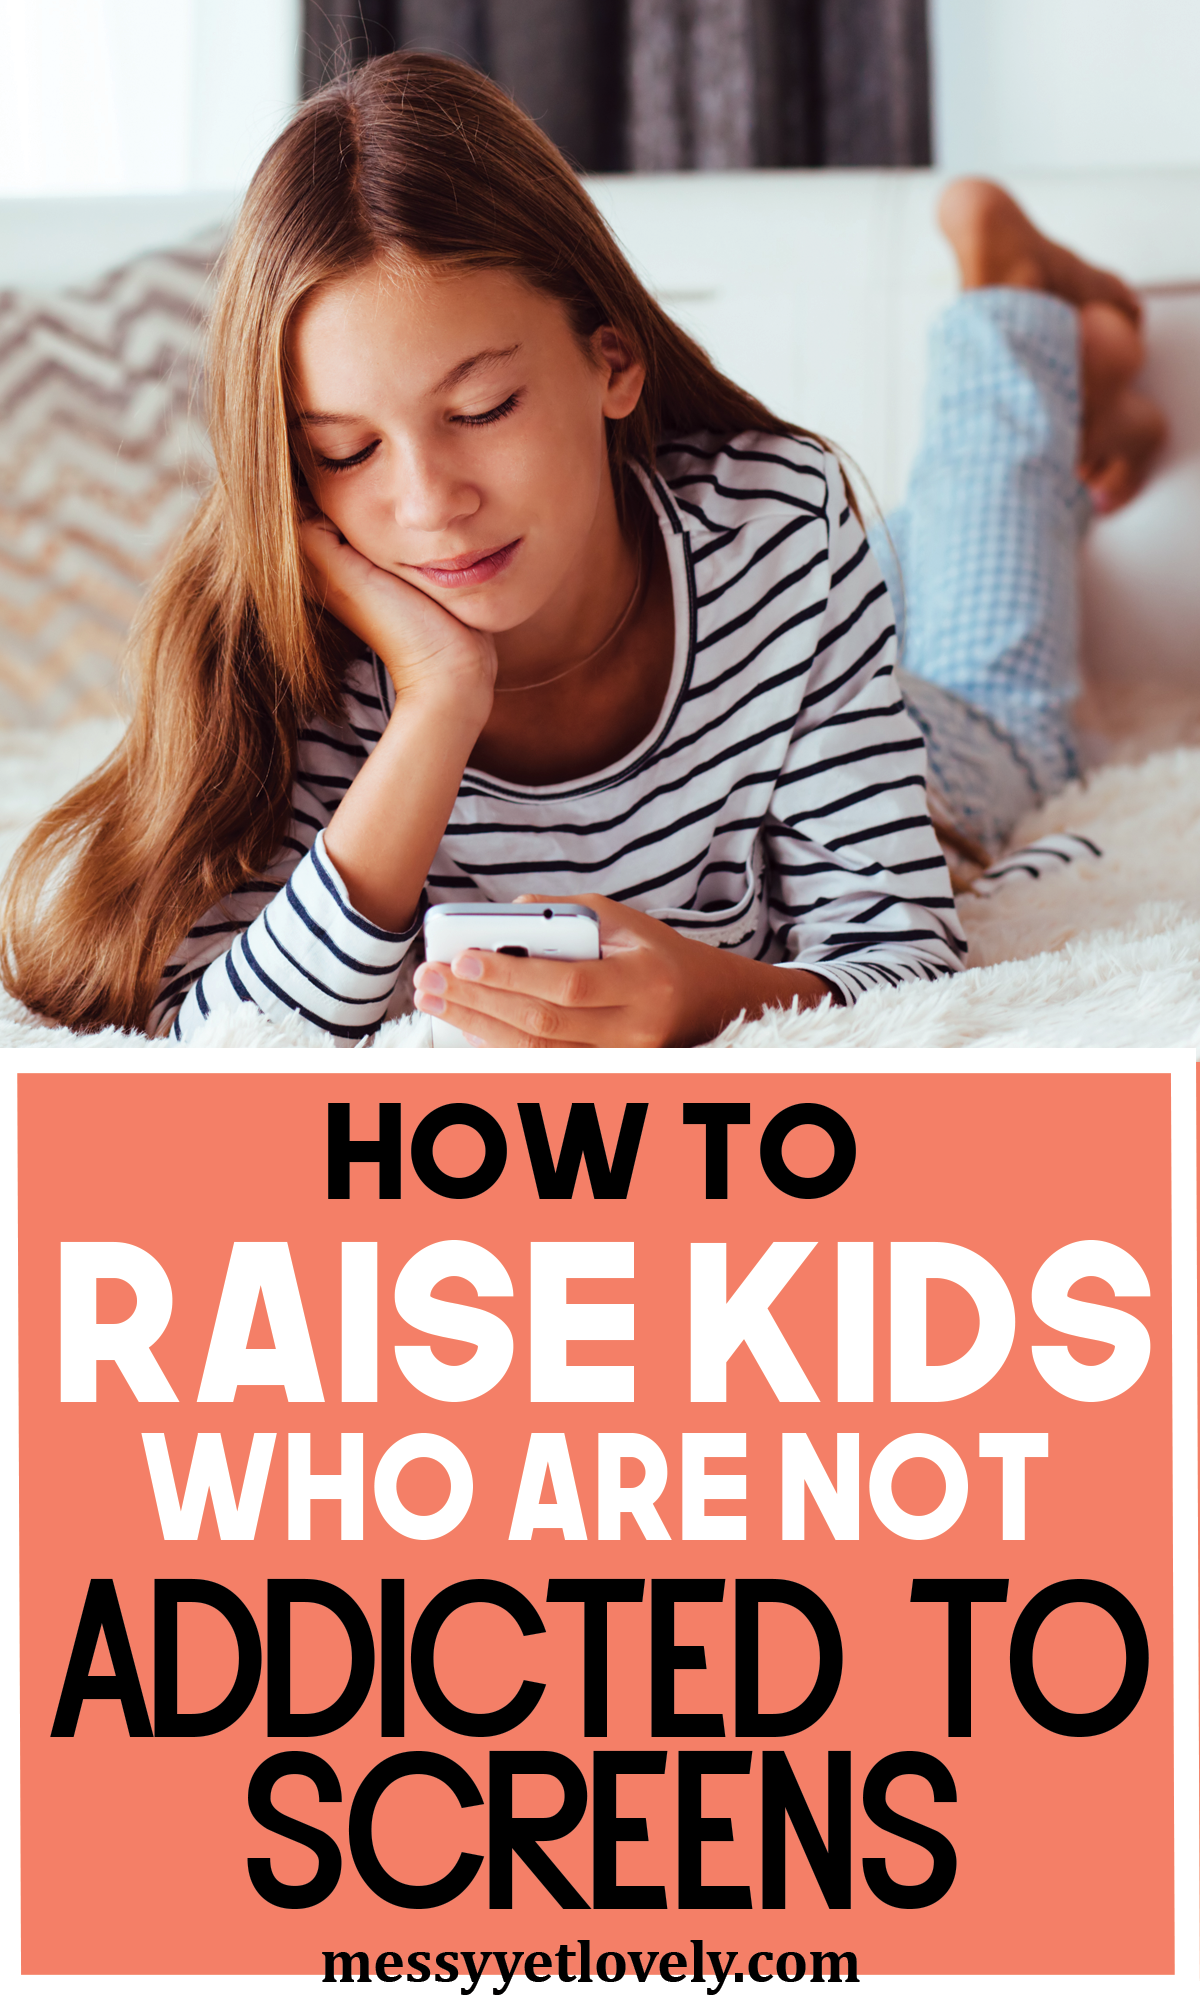 Smartphones and other electronic devices have become an inevitable part of our lives Therefore it has become essential to establish rules for limiting screen time for kid...